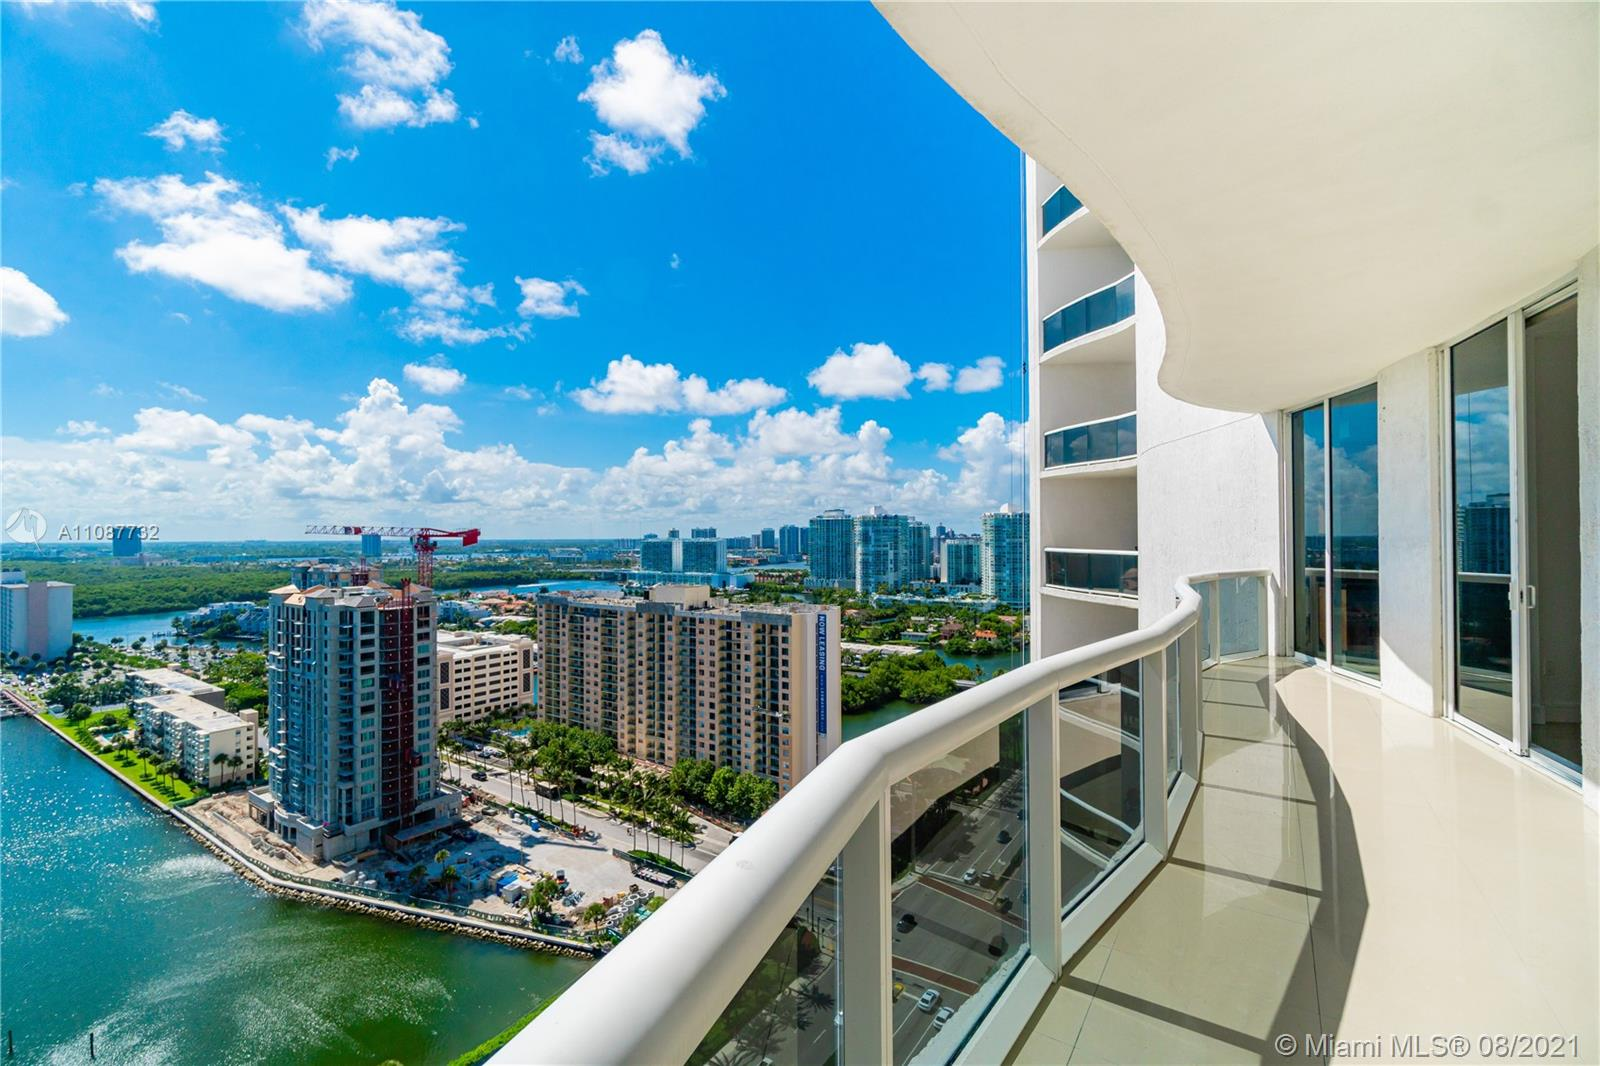 Trump Tower III #2105(available asap) - 15811 Collins Ave #2105(available asap), Sunny Isles Beach, FL 33160